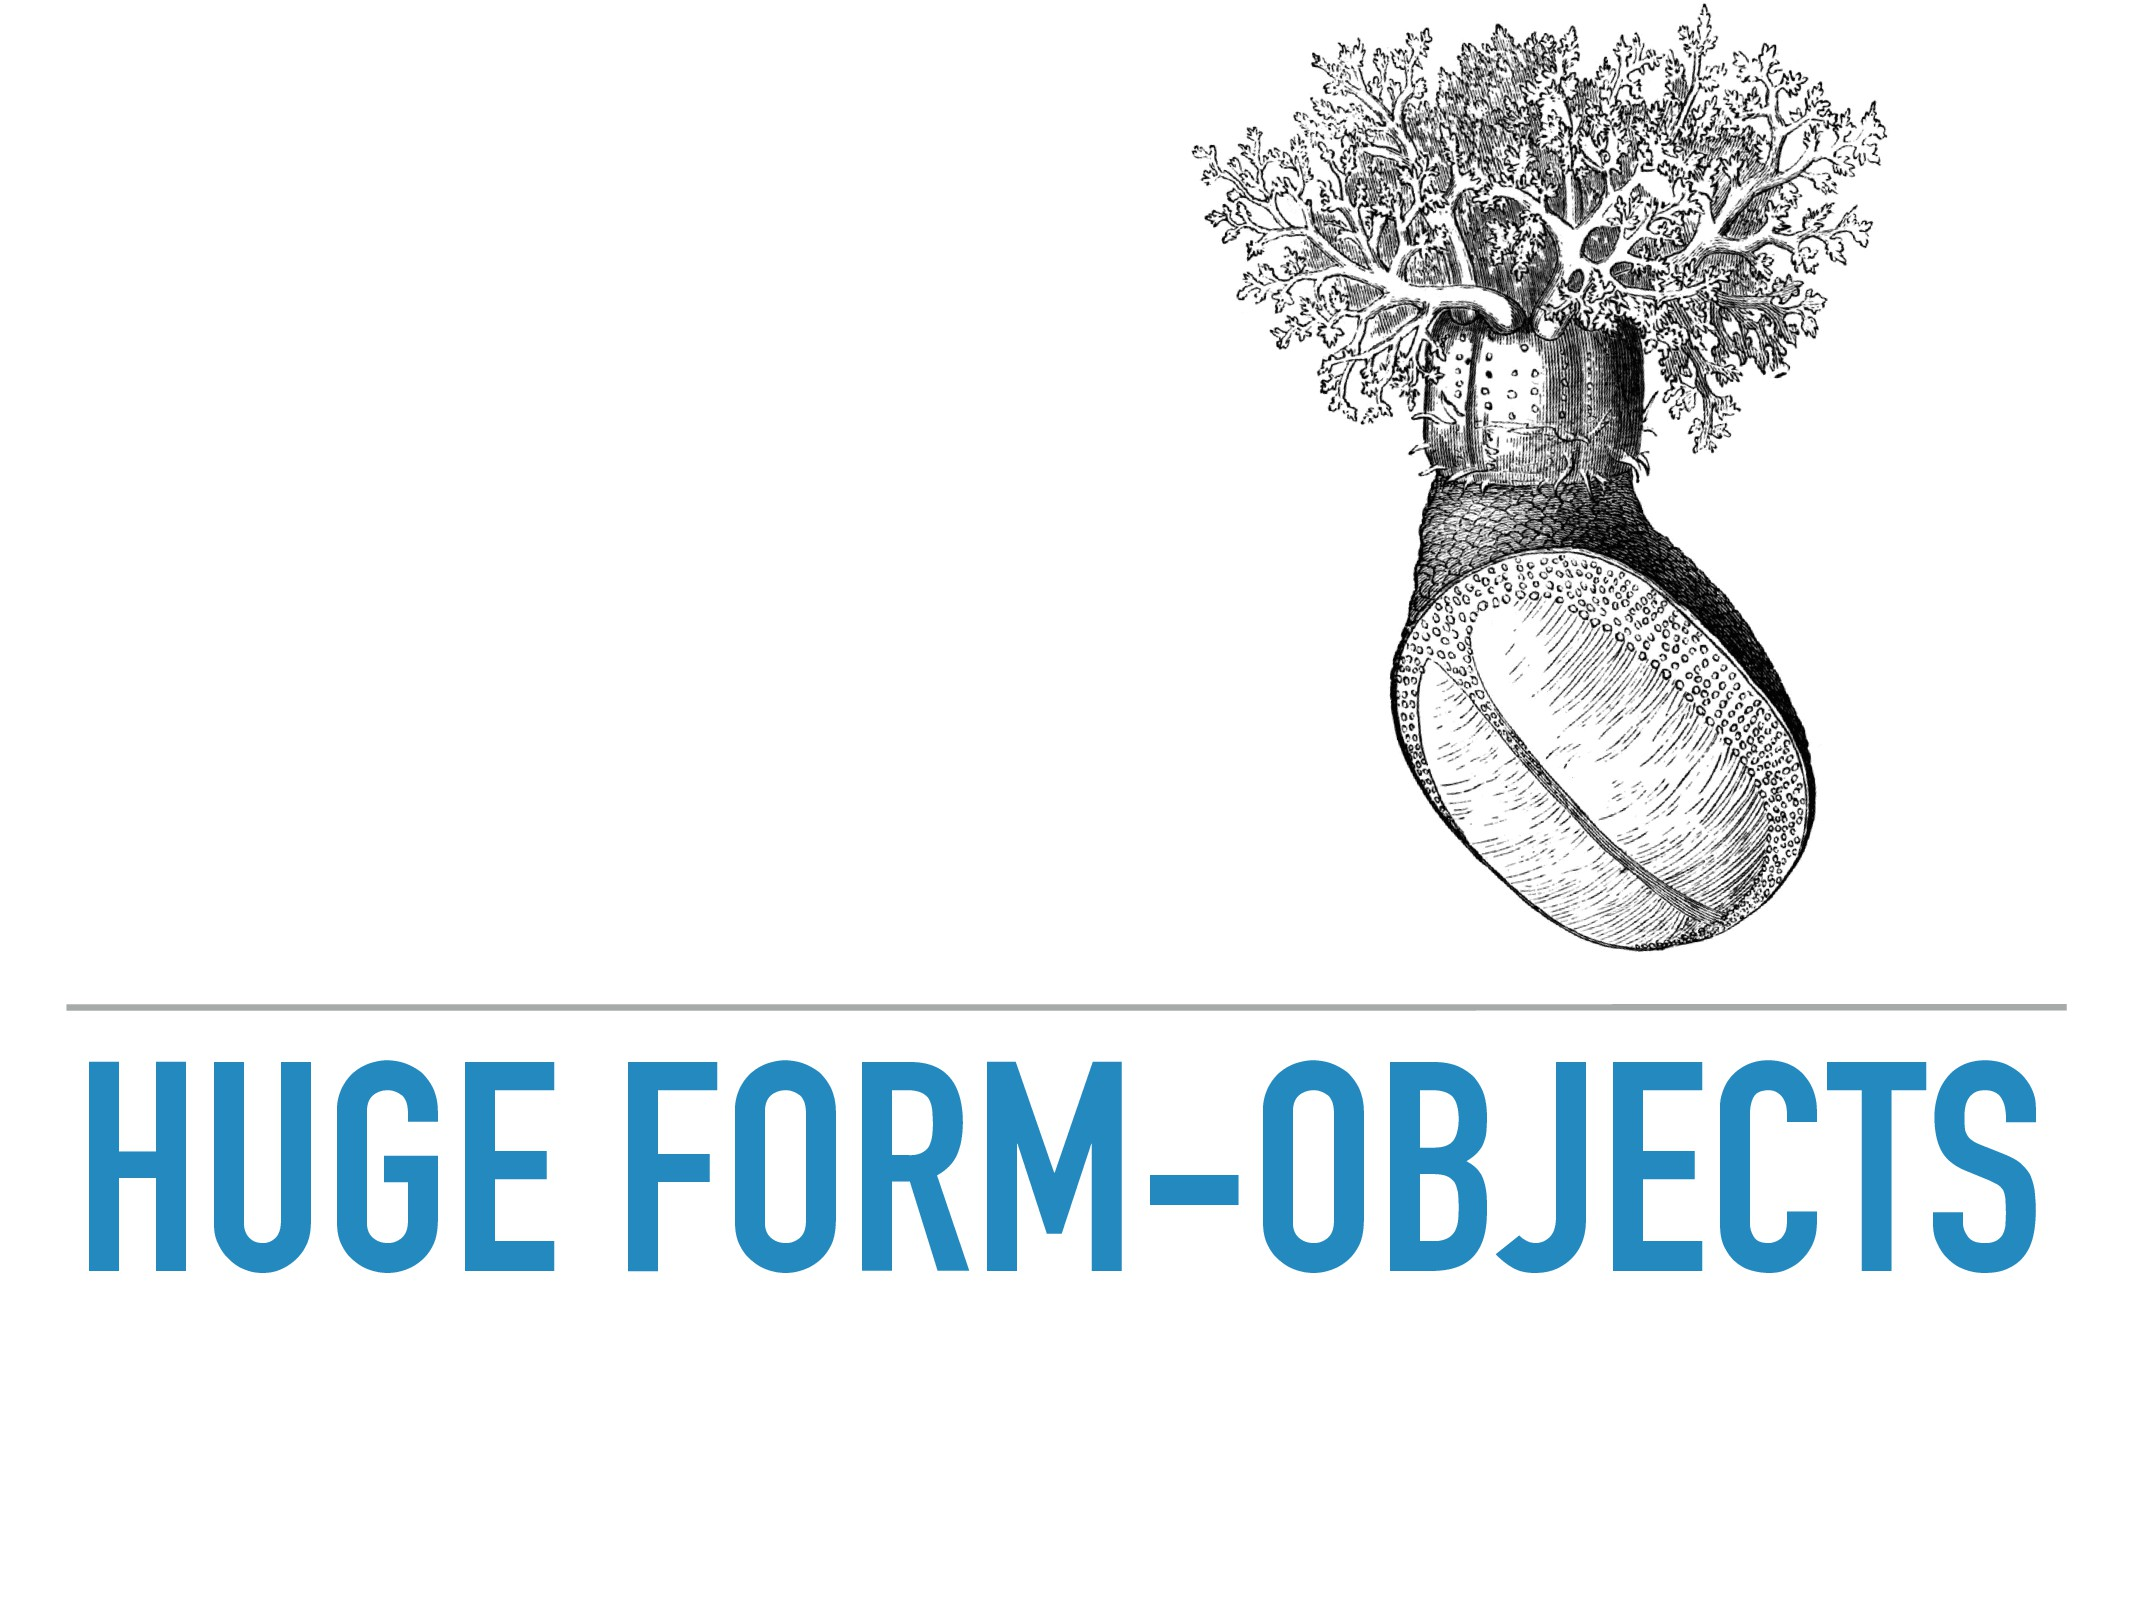 HUGE FORM-OBJECTS